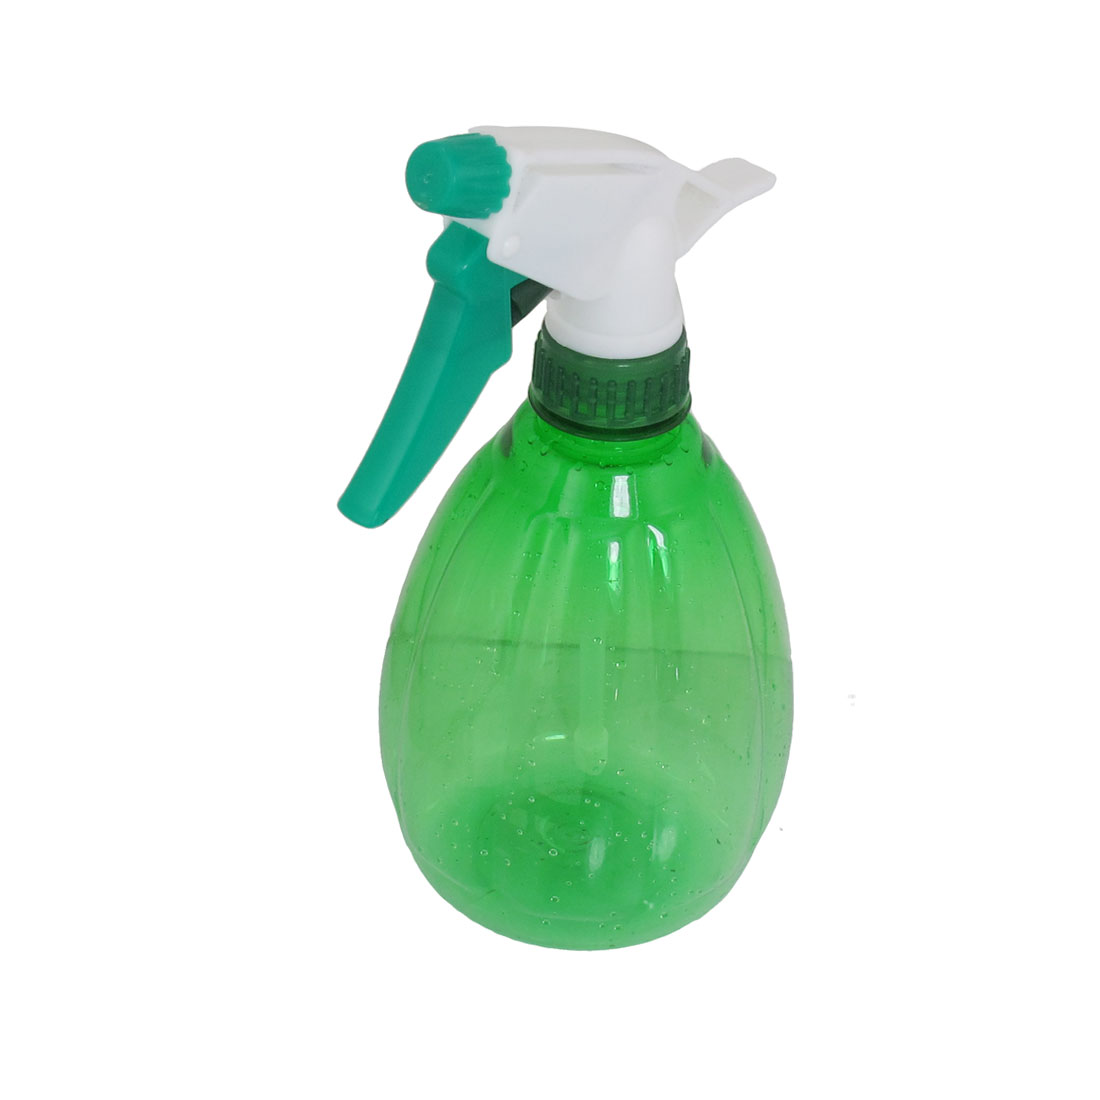 540ml Green Clear Plastic Tigger Sprayer Misting Spray Bottle